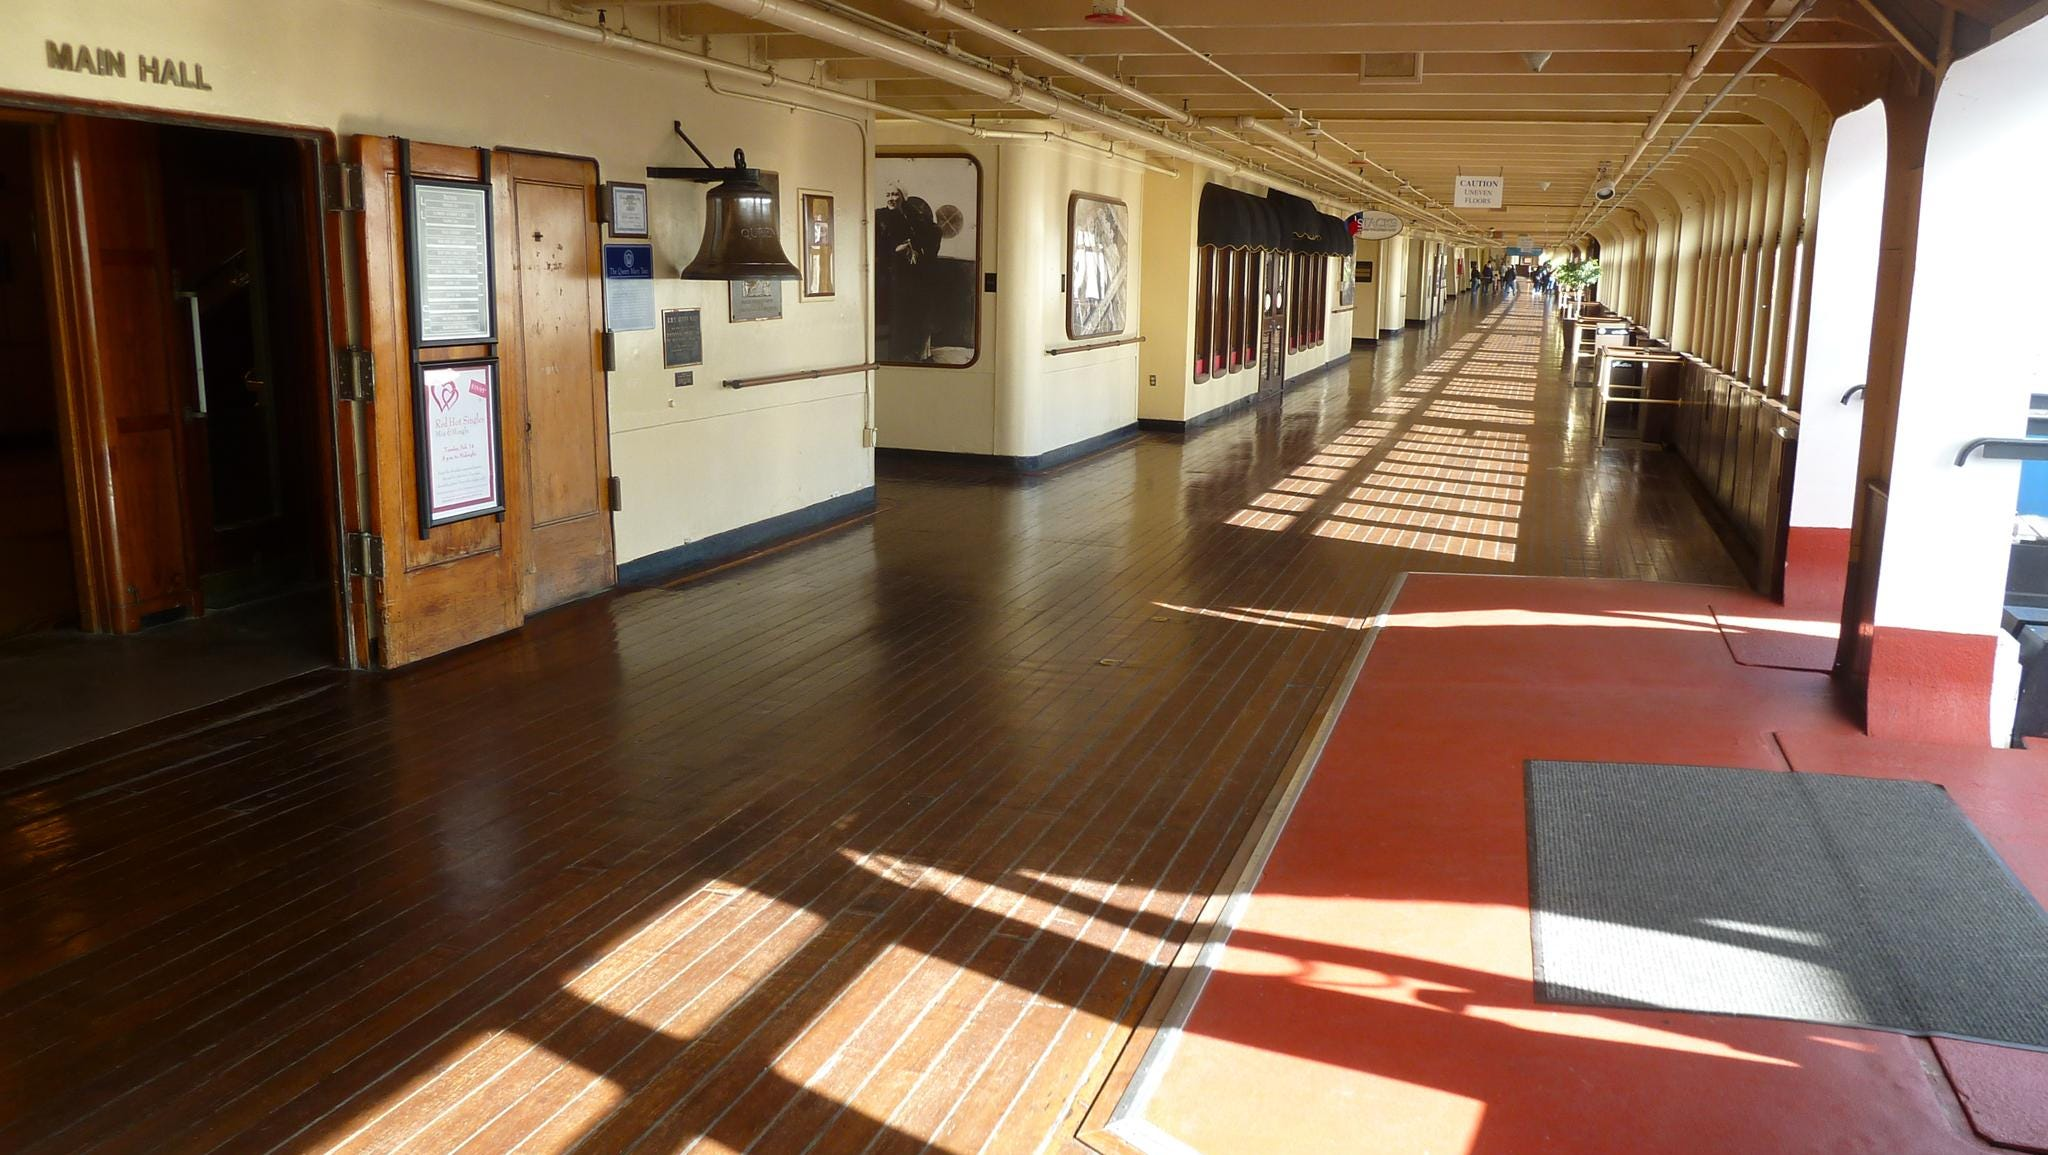 Visitors on tours of the Queen Mary take the elevators to level four and embark on the Promenade Deck's original teak-lined, glass-enclosed port promenade.